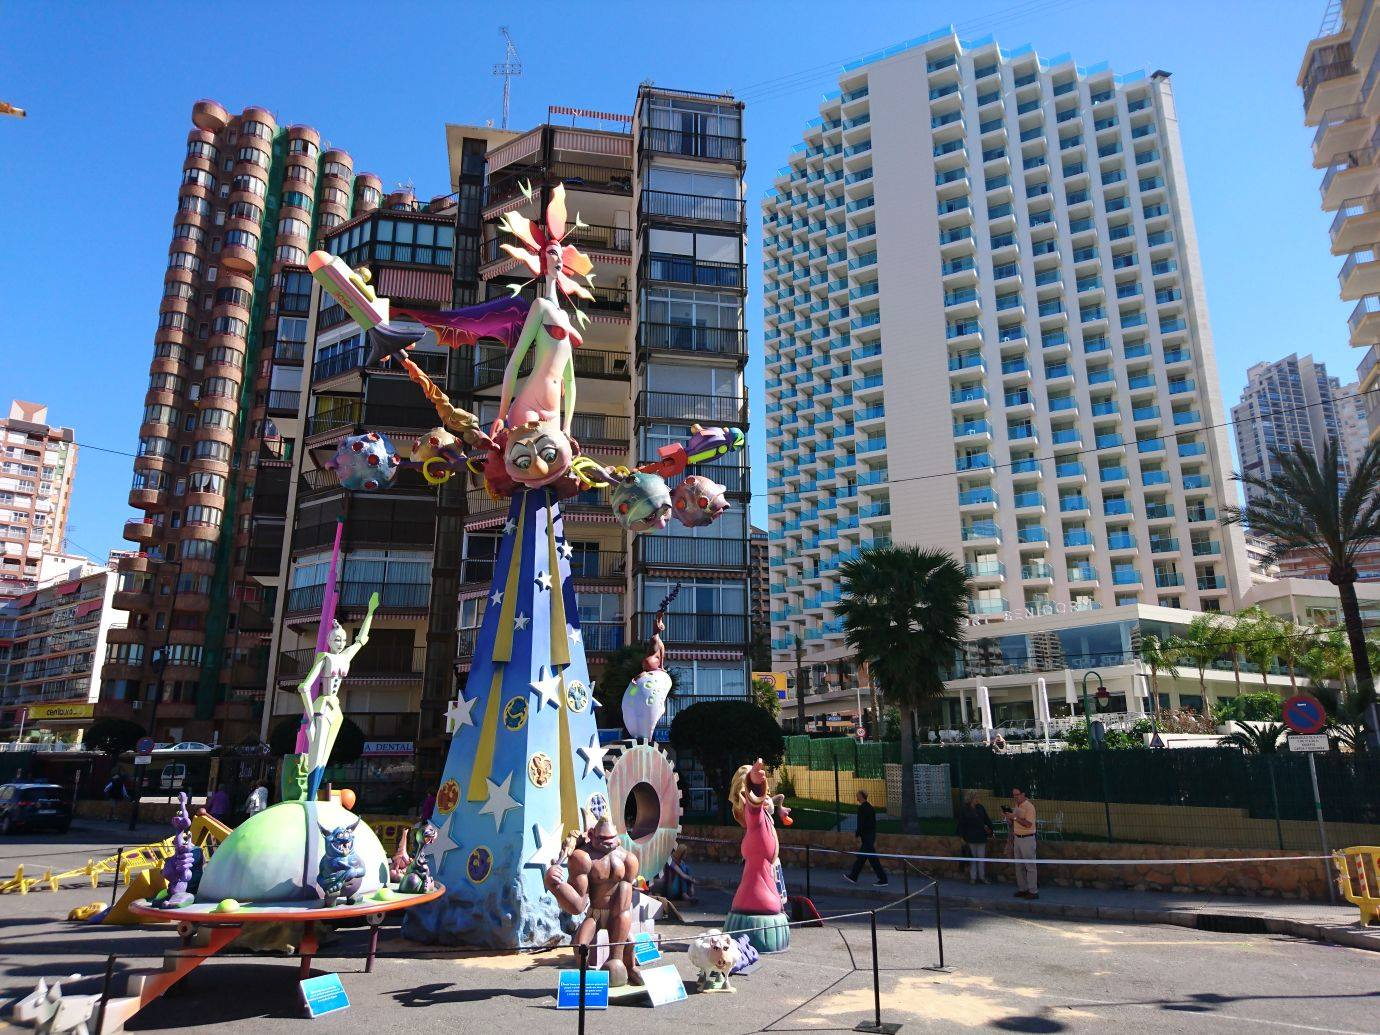 Photo from Benidorm Fallas